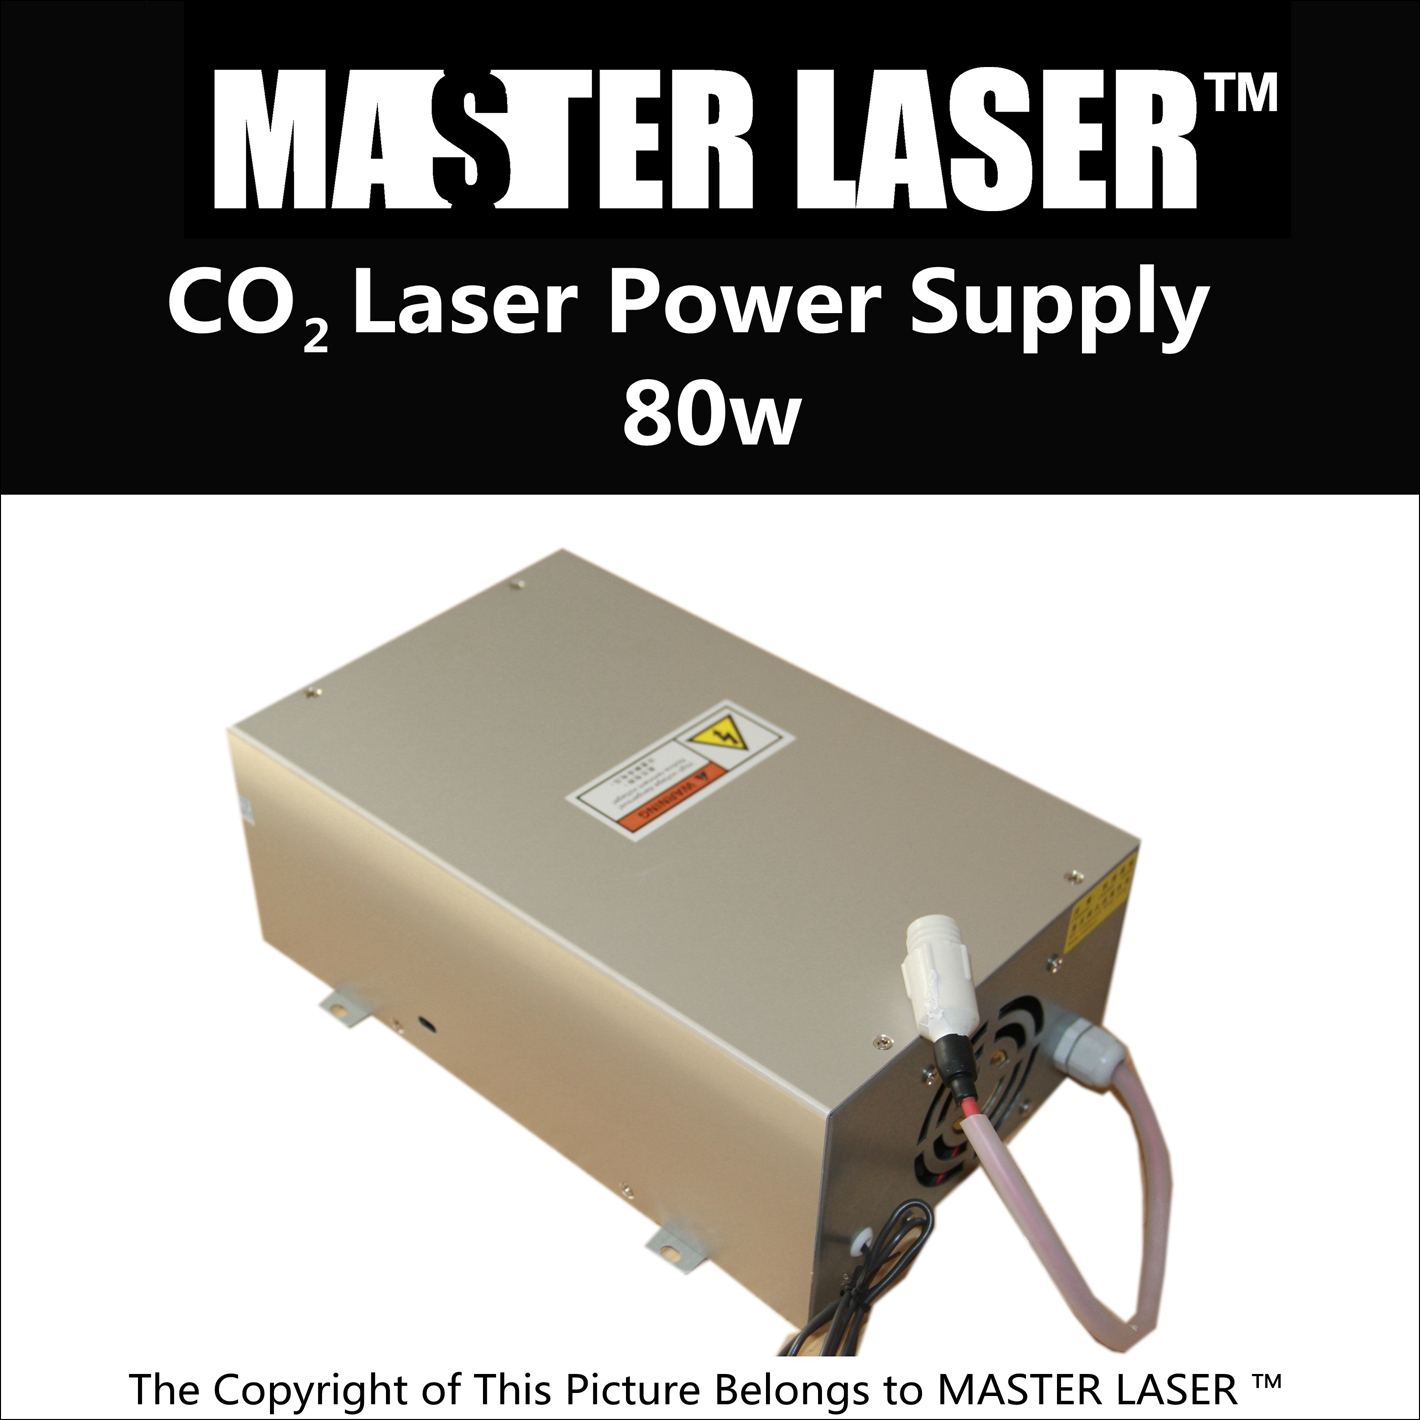 Discount 80W CO2 Laser Power Supply for Laser Cutting Machine 1390 80% discount